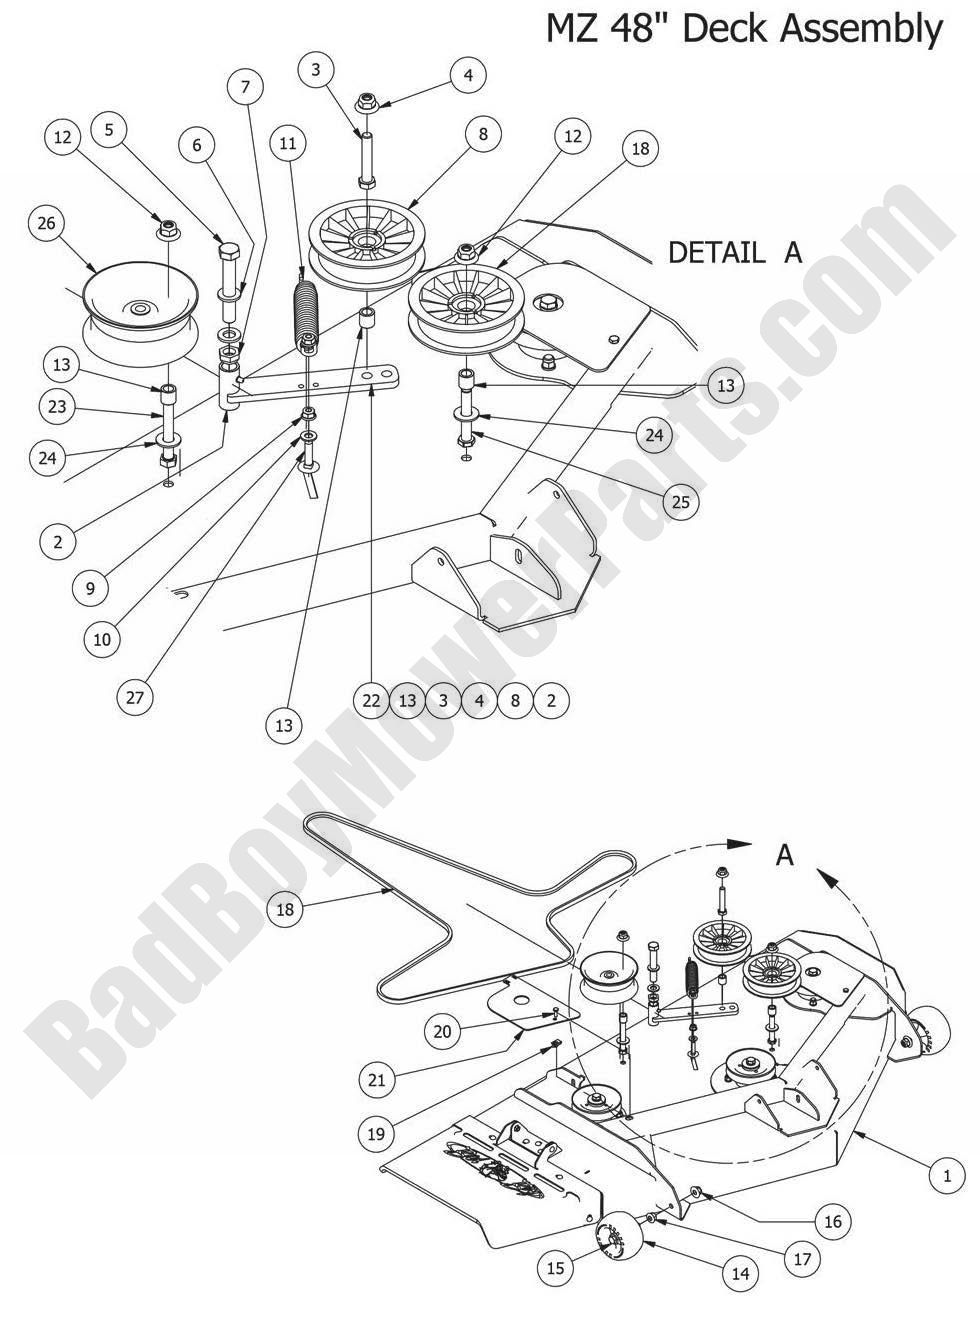 kohler magnum wiring diagram kohler image bad boy parts lookup 2014 mz magnum kohler engine 725cc on kohler magnum 18 wiring diagram